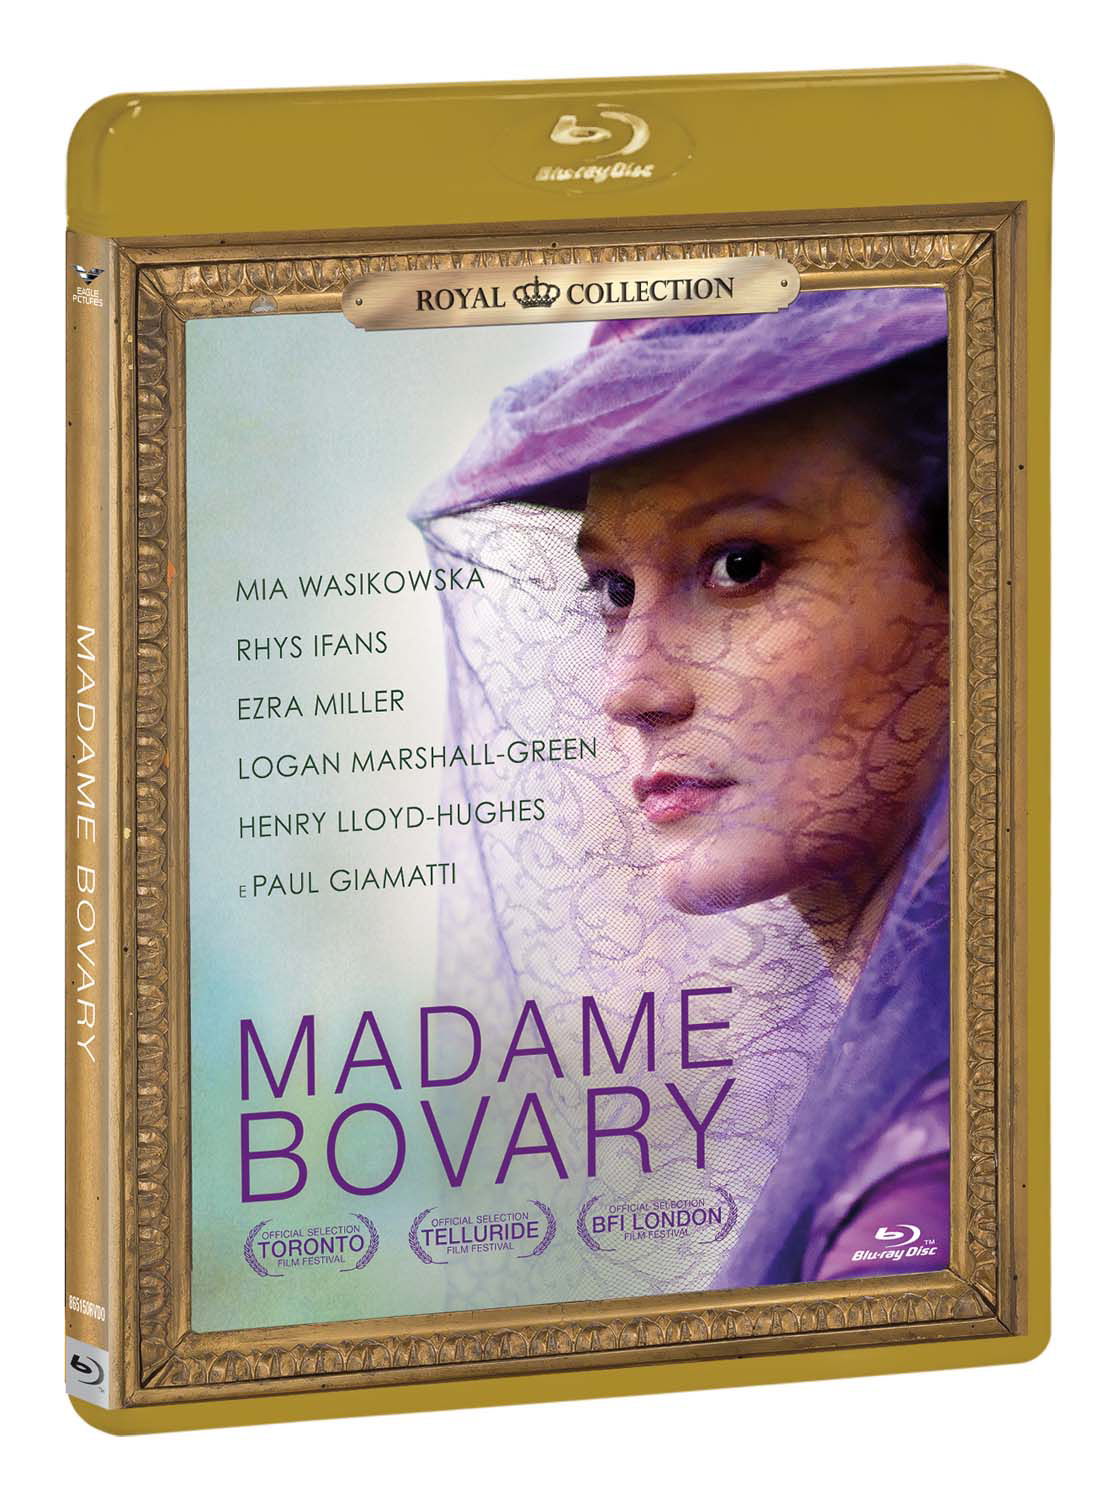 MADAME BOVARY (ROYAL COLLECTION) - BLU RAY